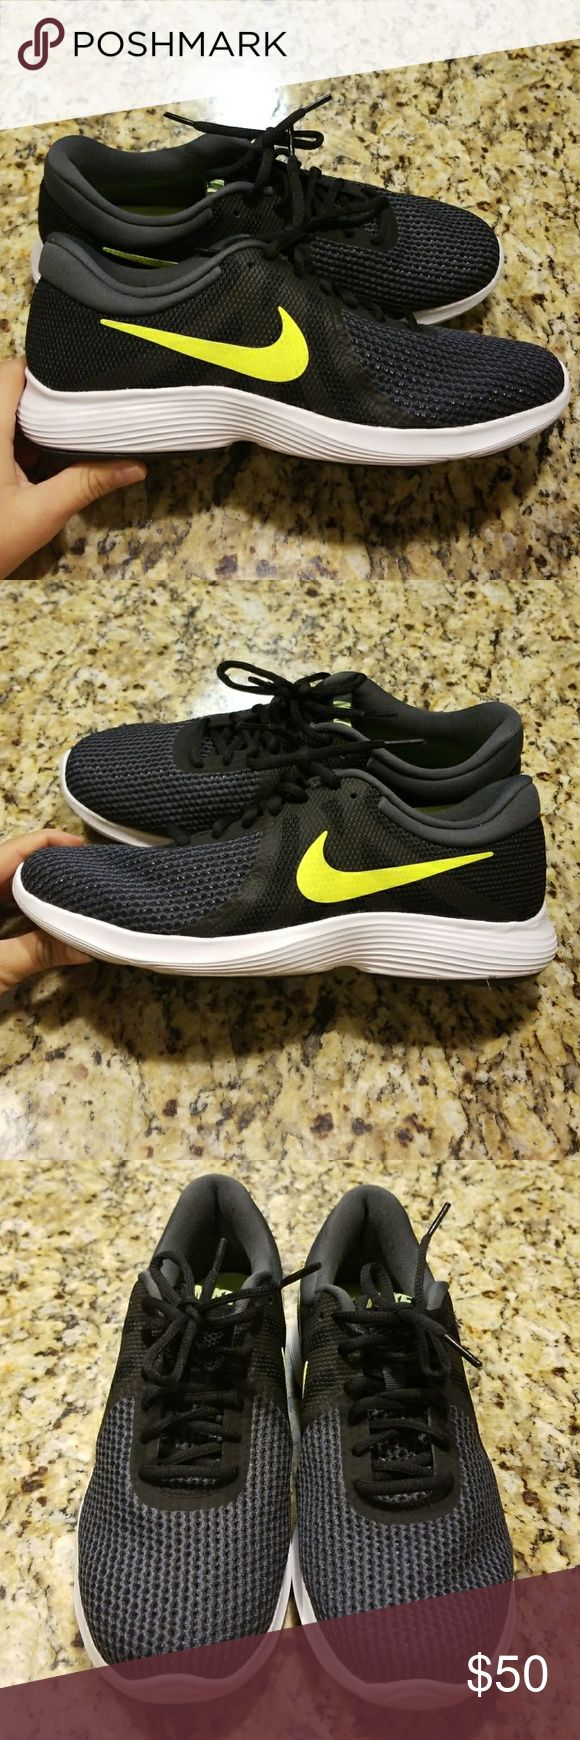 MENS NIKE REVOLUTION 3 # 908988-007 Look sporty in these Nike Revolution 3 shoes. These running shoes are equipped with a mesh upper to allow for breathability and comfort while you are on your daily run  (USED)EXCELLENT CONDITION UPPER LOOKS GREAT SOLE IS A LITTLE DIRTY PLEASE REVIEW ALL PIX😊  COLORS:Black Volt Anthracite Nike Shoes Sneakers